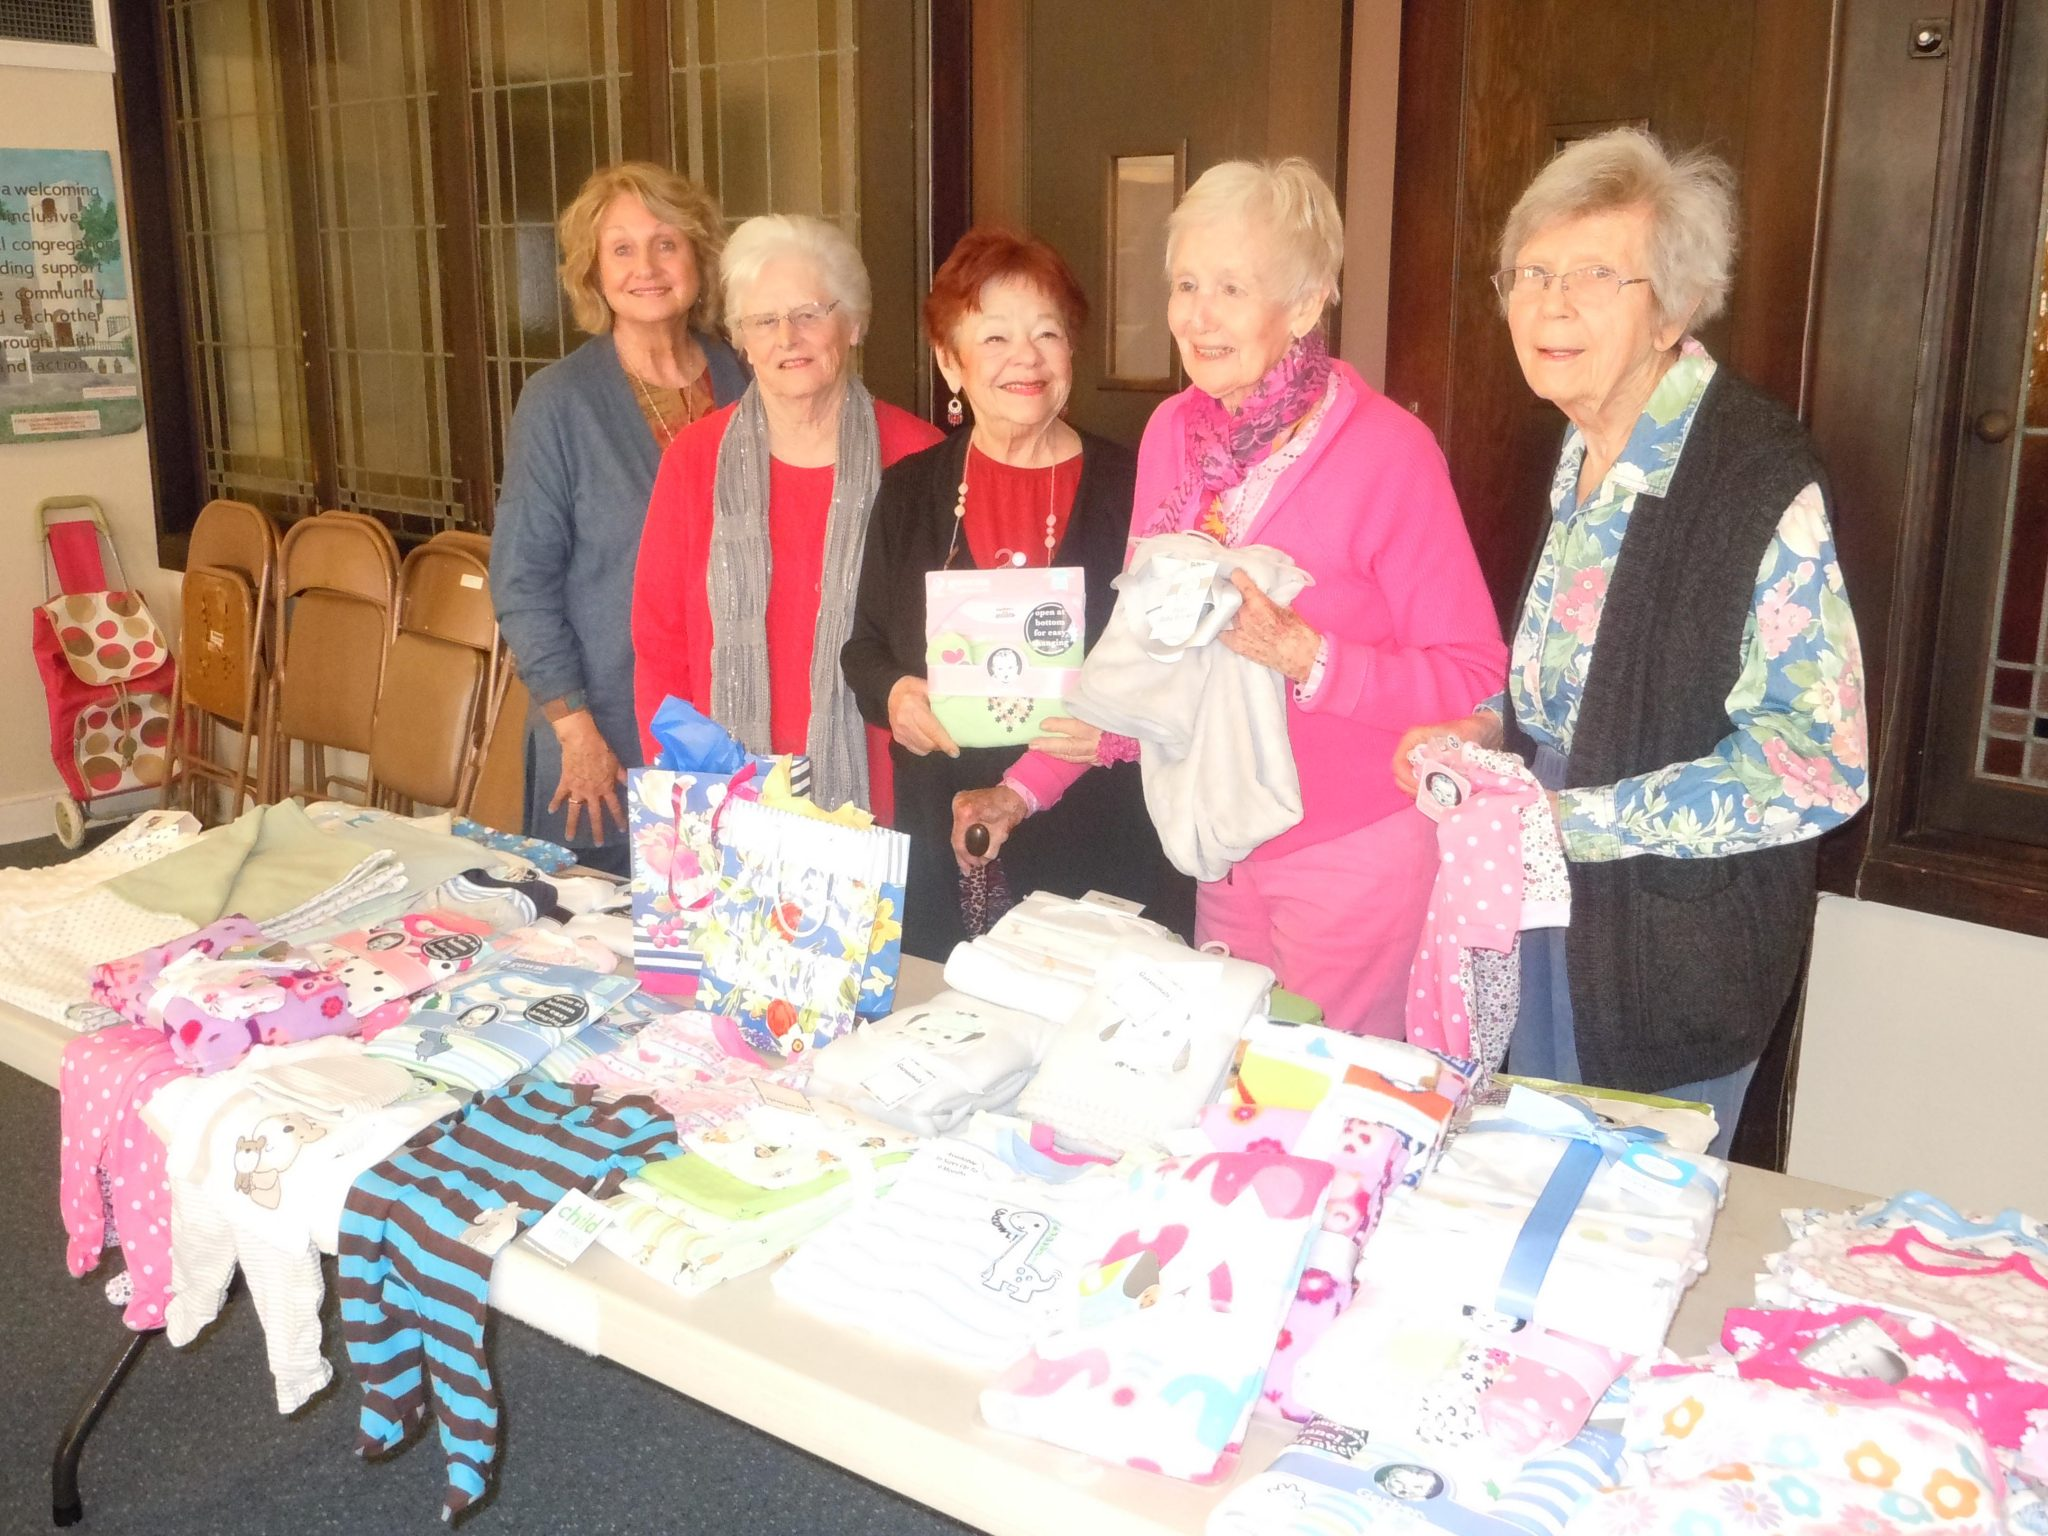 Priscilla Circle ladies of the Martinez Congregational Church display the baby items from their 18th annual Grandma Baby Shower. They are Linda Martinot, event chairman Betty Holt, Georgia Stockton, Doris Parks, and Carol Baier. (COURTESY / On File)